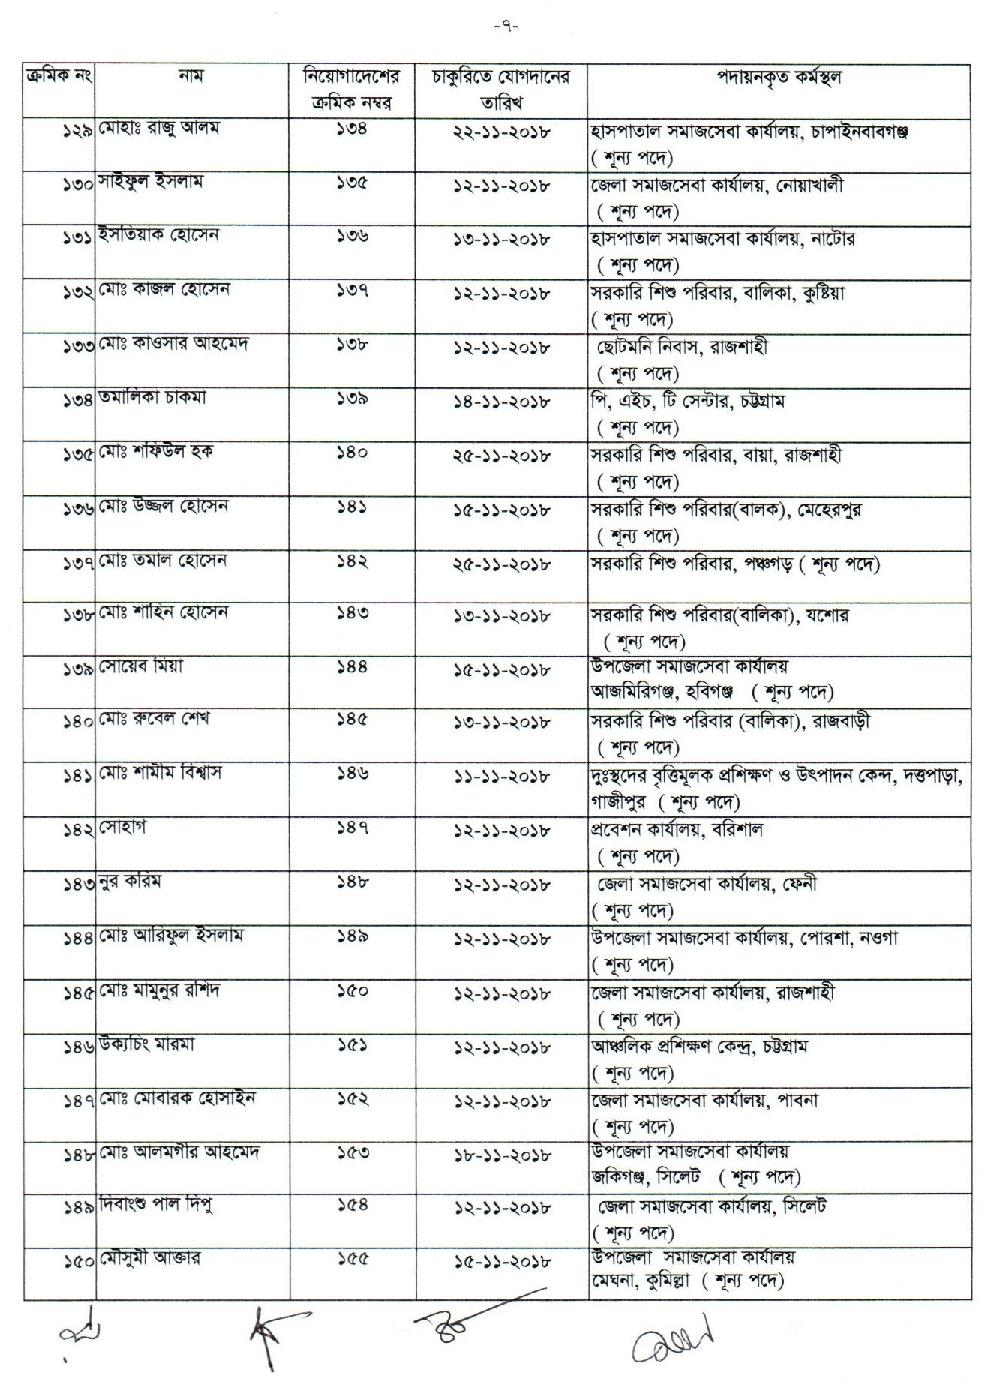 DSS Final Result And Appointment Circular 2018 6